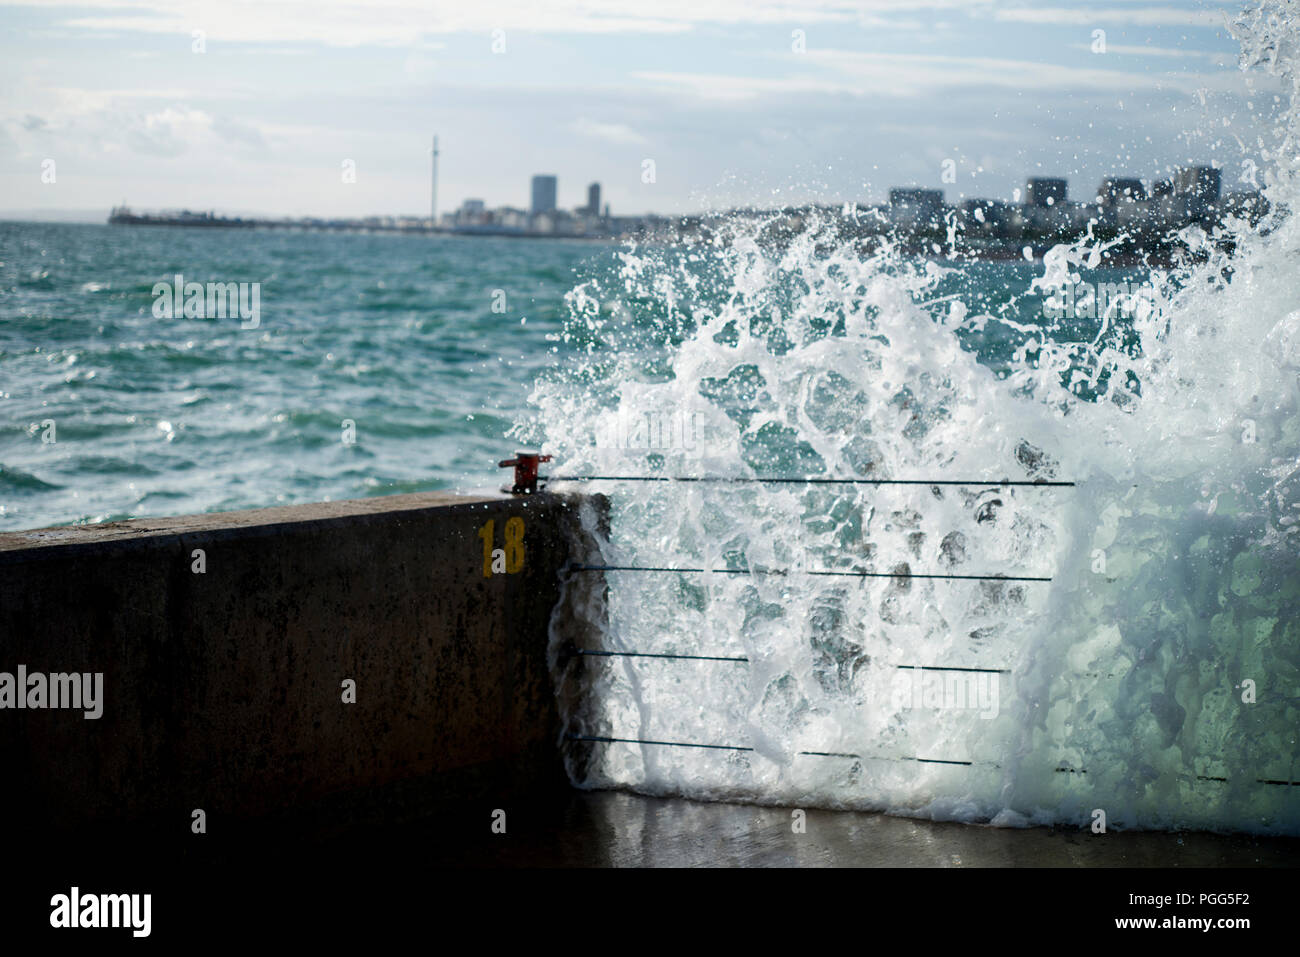 Waves smashing against Brighton Marina wall with Brighton Pier and i360 in the background. - Stock Image